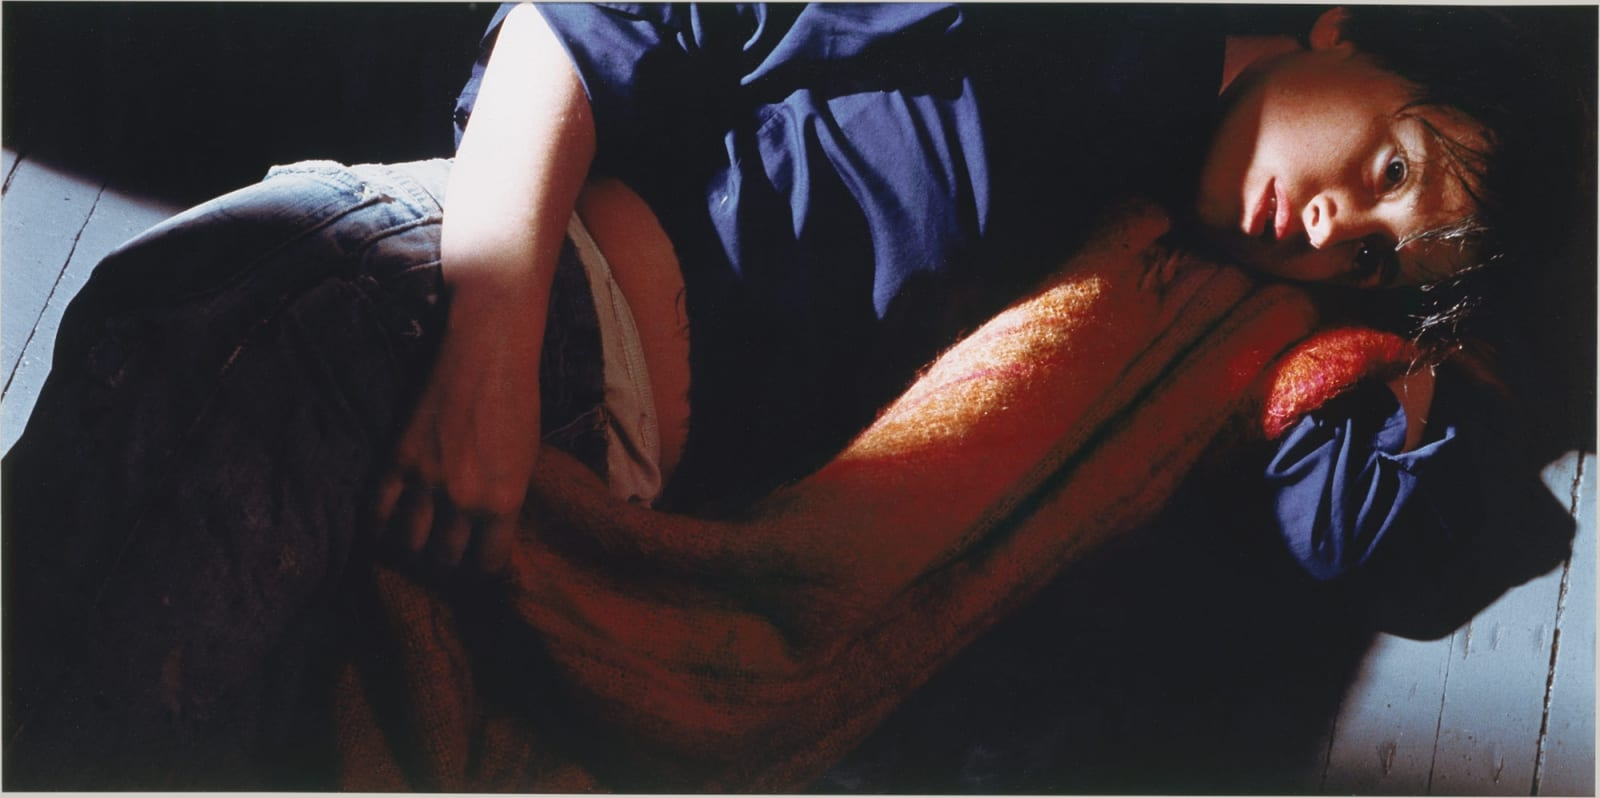 Cindy Sherman Untitled #87 from the Centerfolds series 1981 color photograph 24 x 48 inches 61 x 121.9 cm Edition 6 of 10 More Info